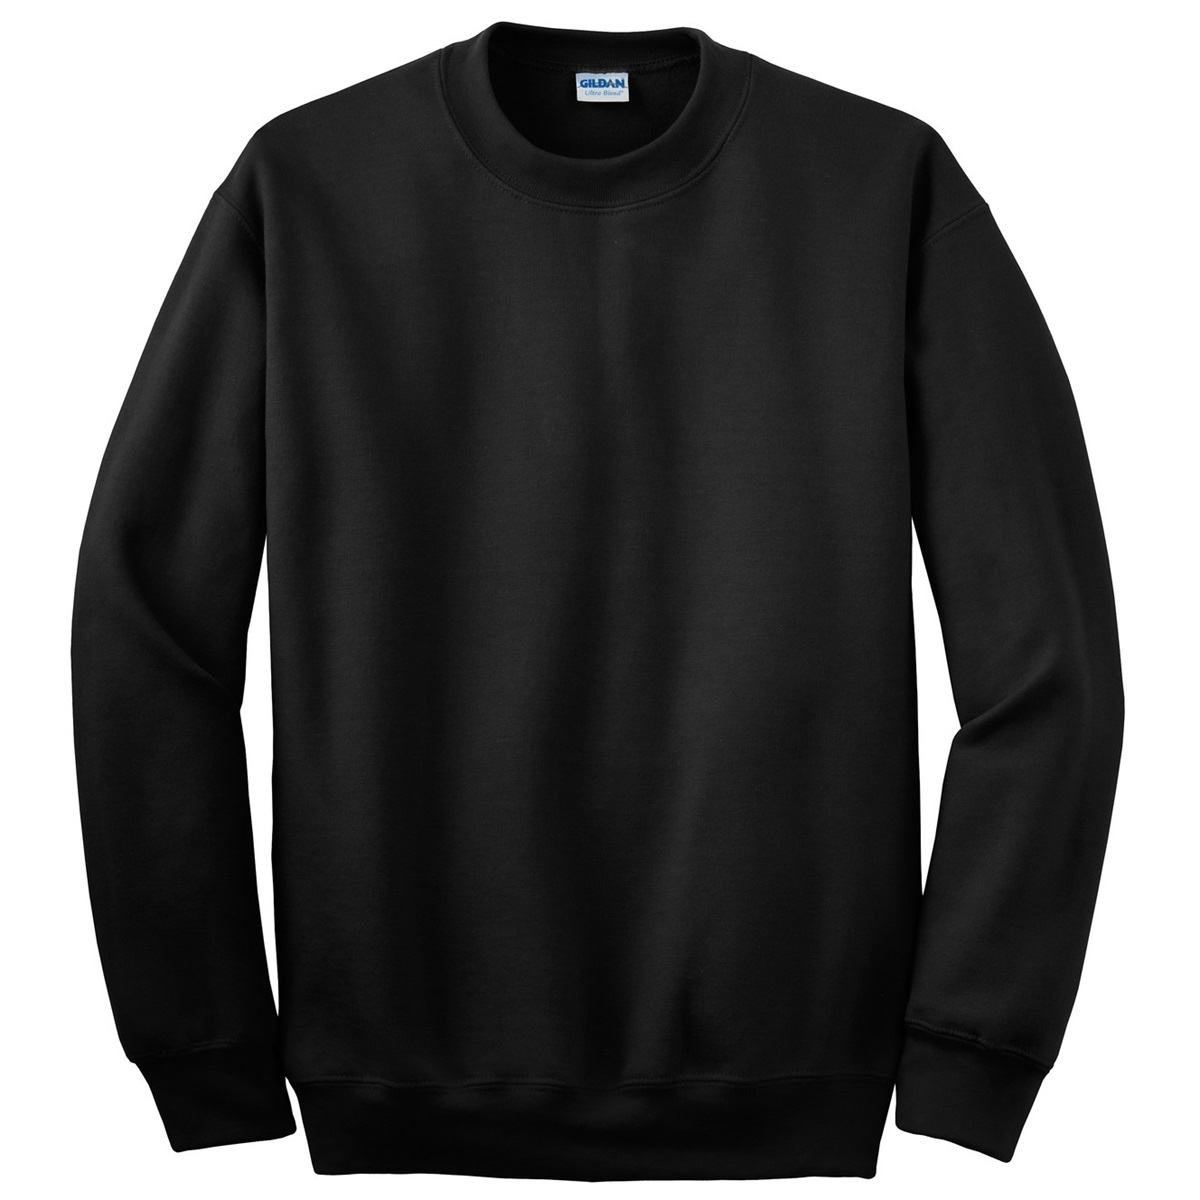 Shop for black crew neck sweater online at Target. Free shipping on purchases over $35 and save 5% every day with your Target REDcard.